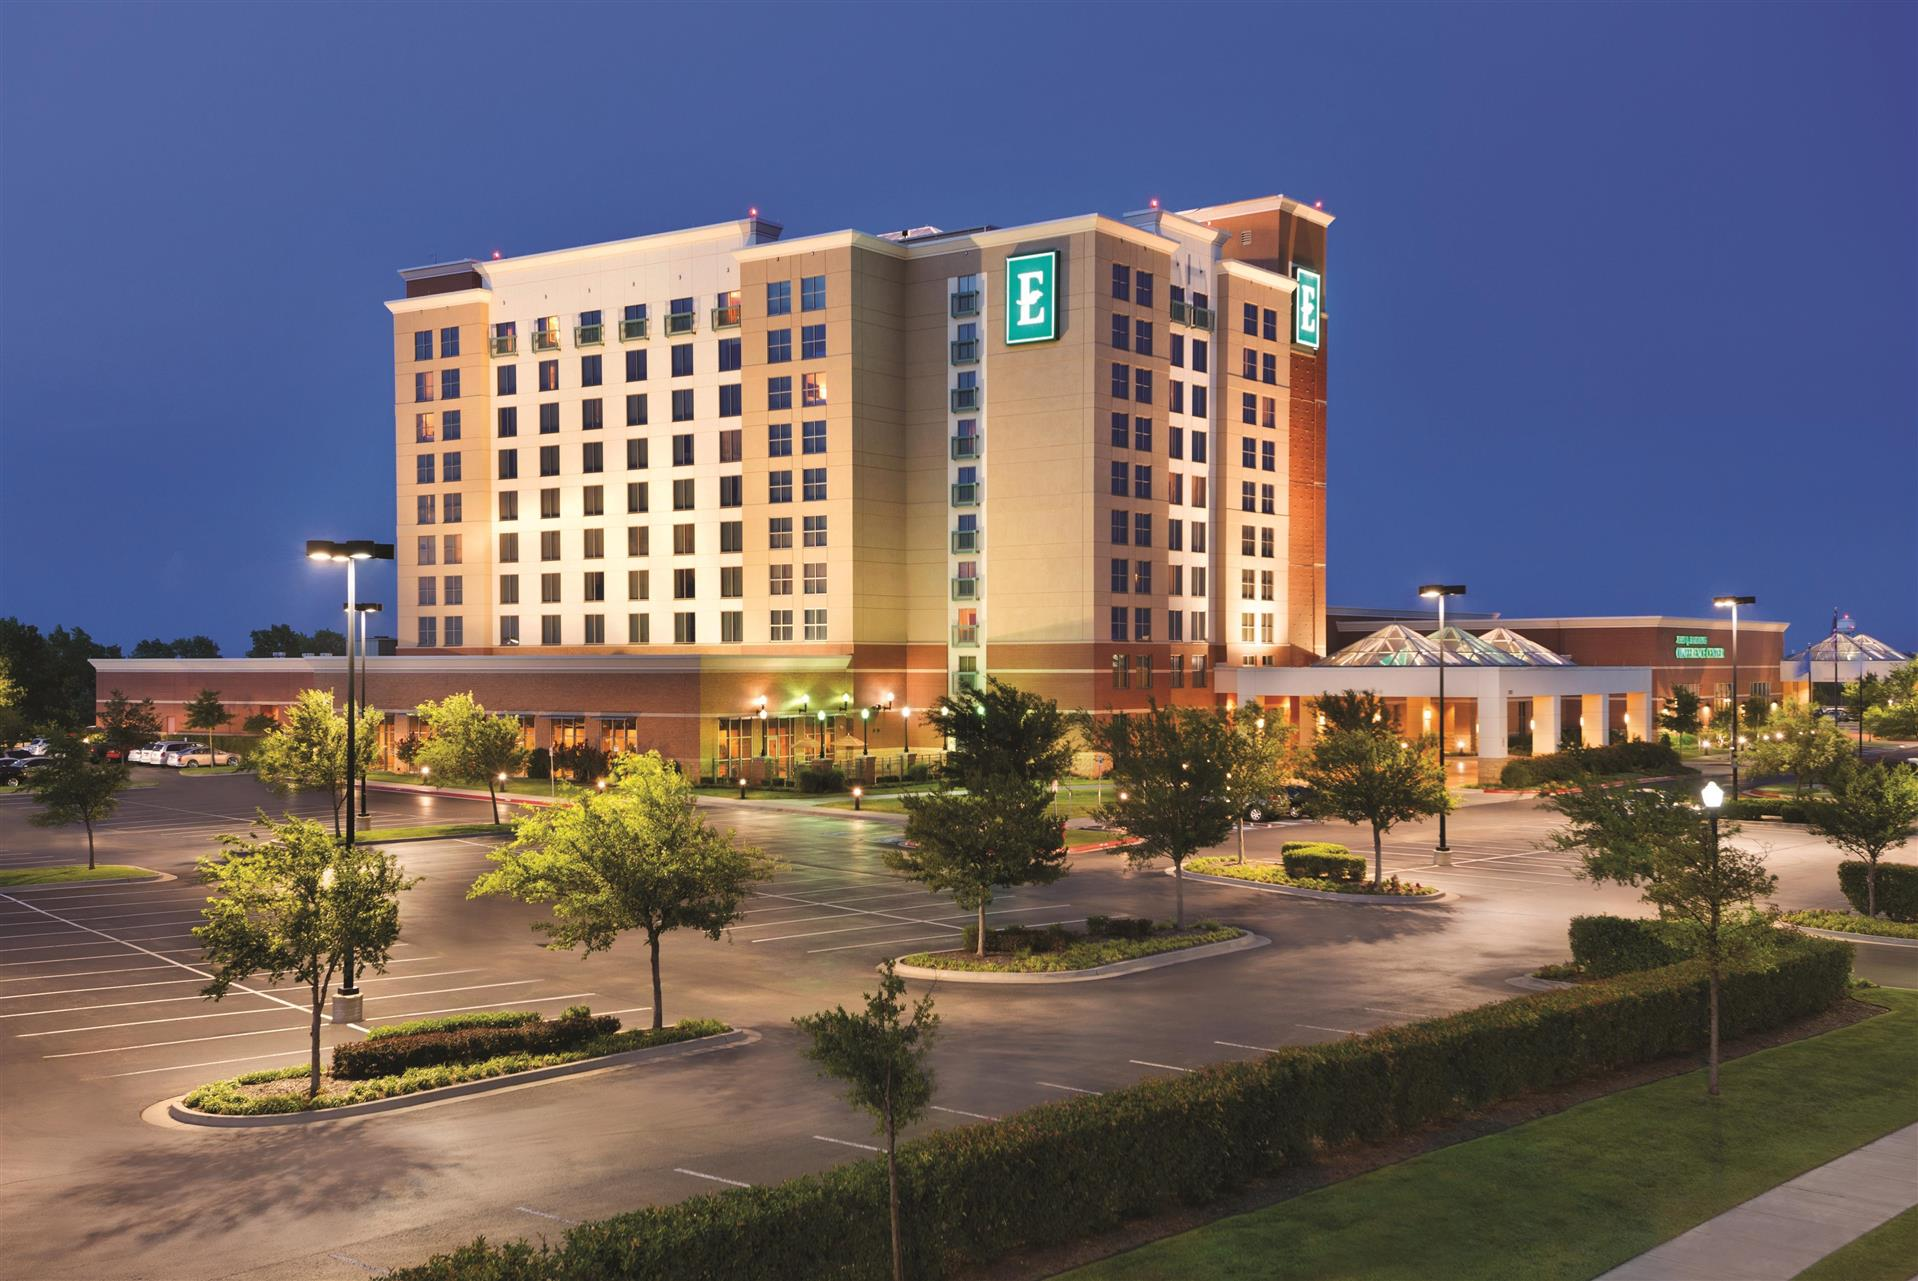 Meetings And Events At Hilton Garden Inn Norman Norman Ok Us